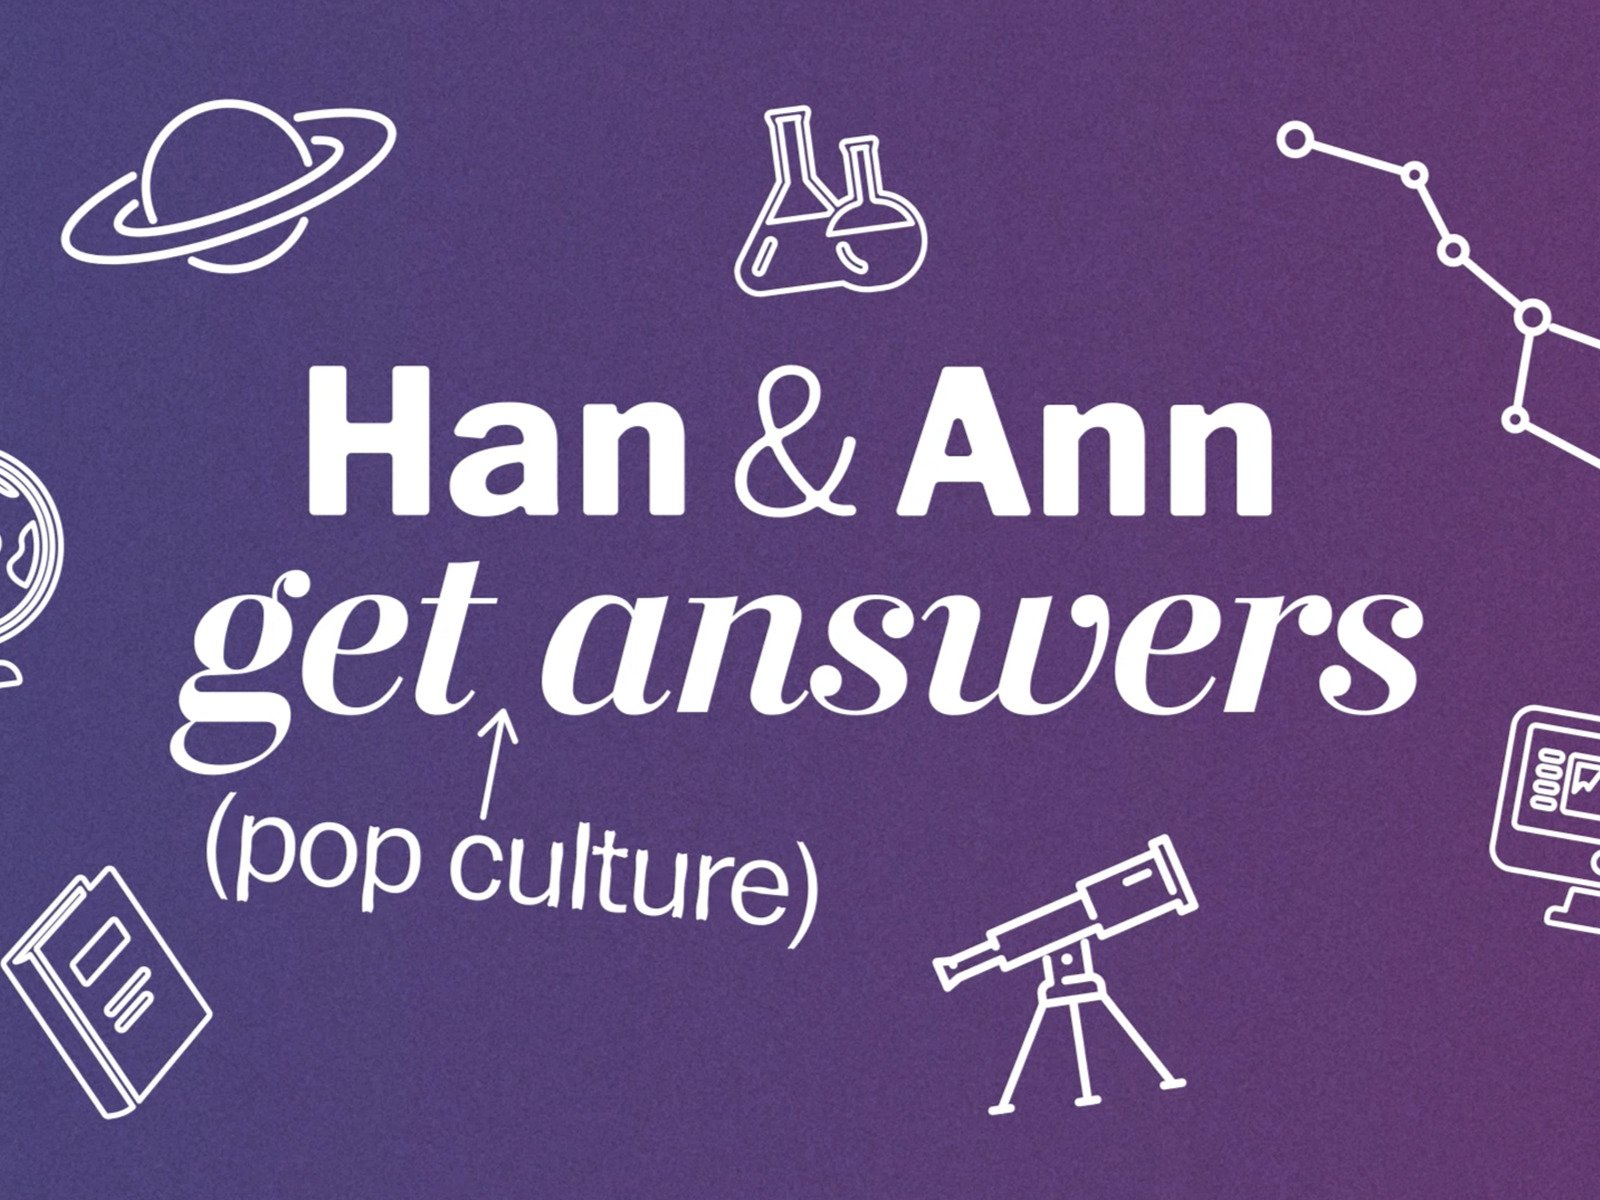 Han and Ann get answers - Season 1